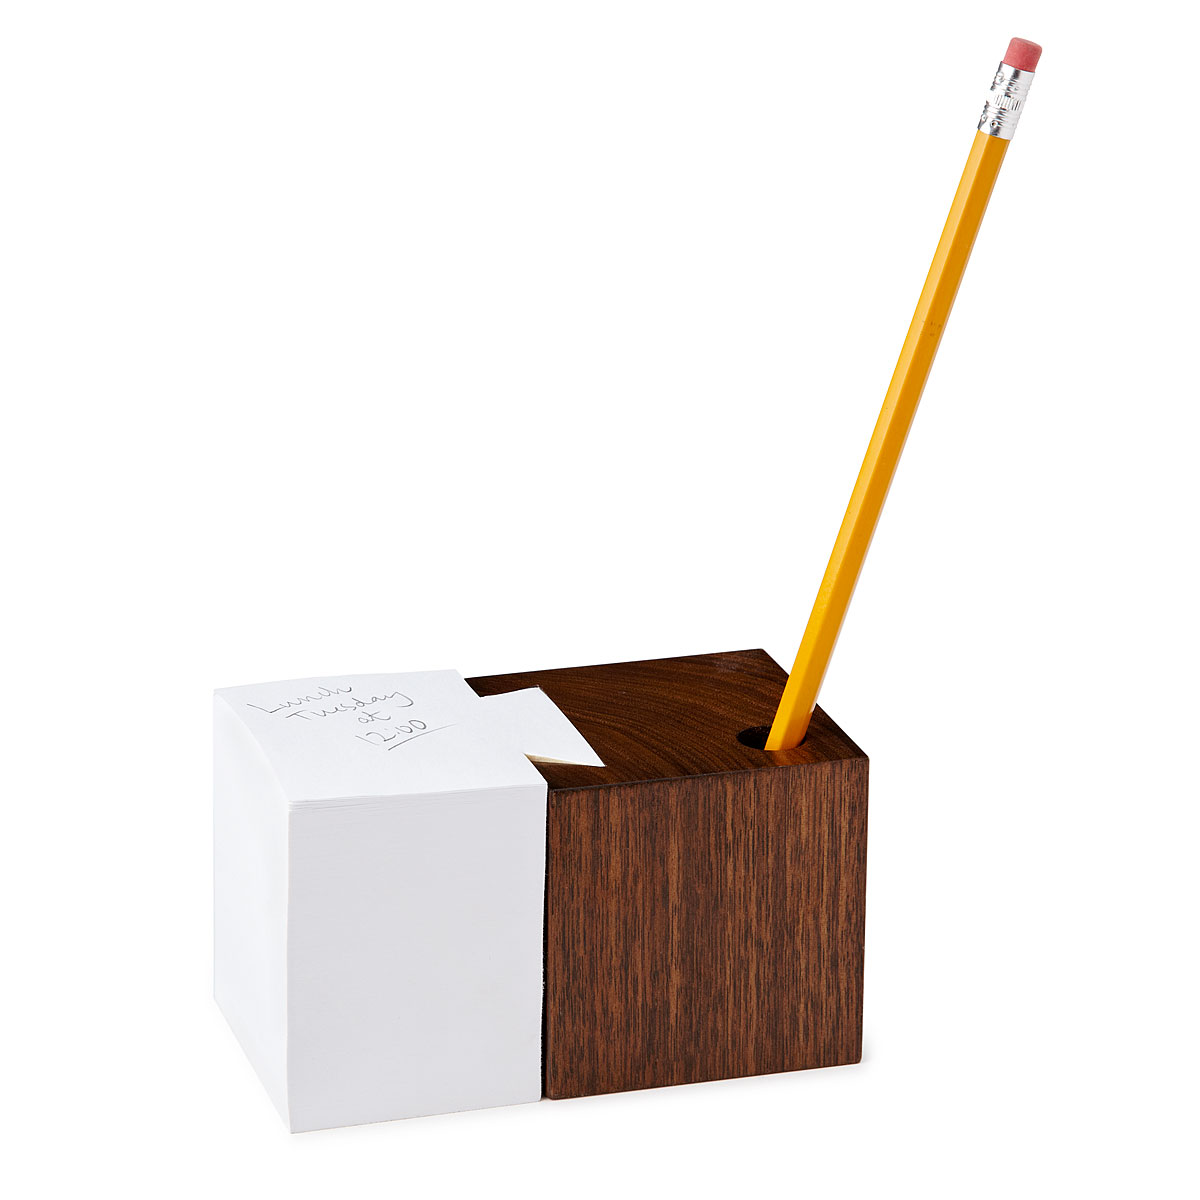 dovetail pencil holder Best of Office Weekend Roundup 154